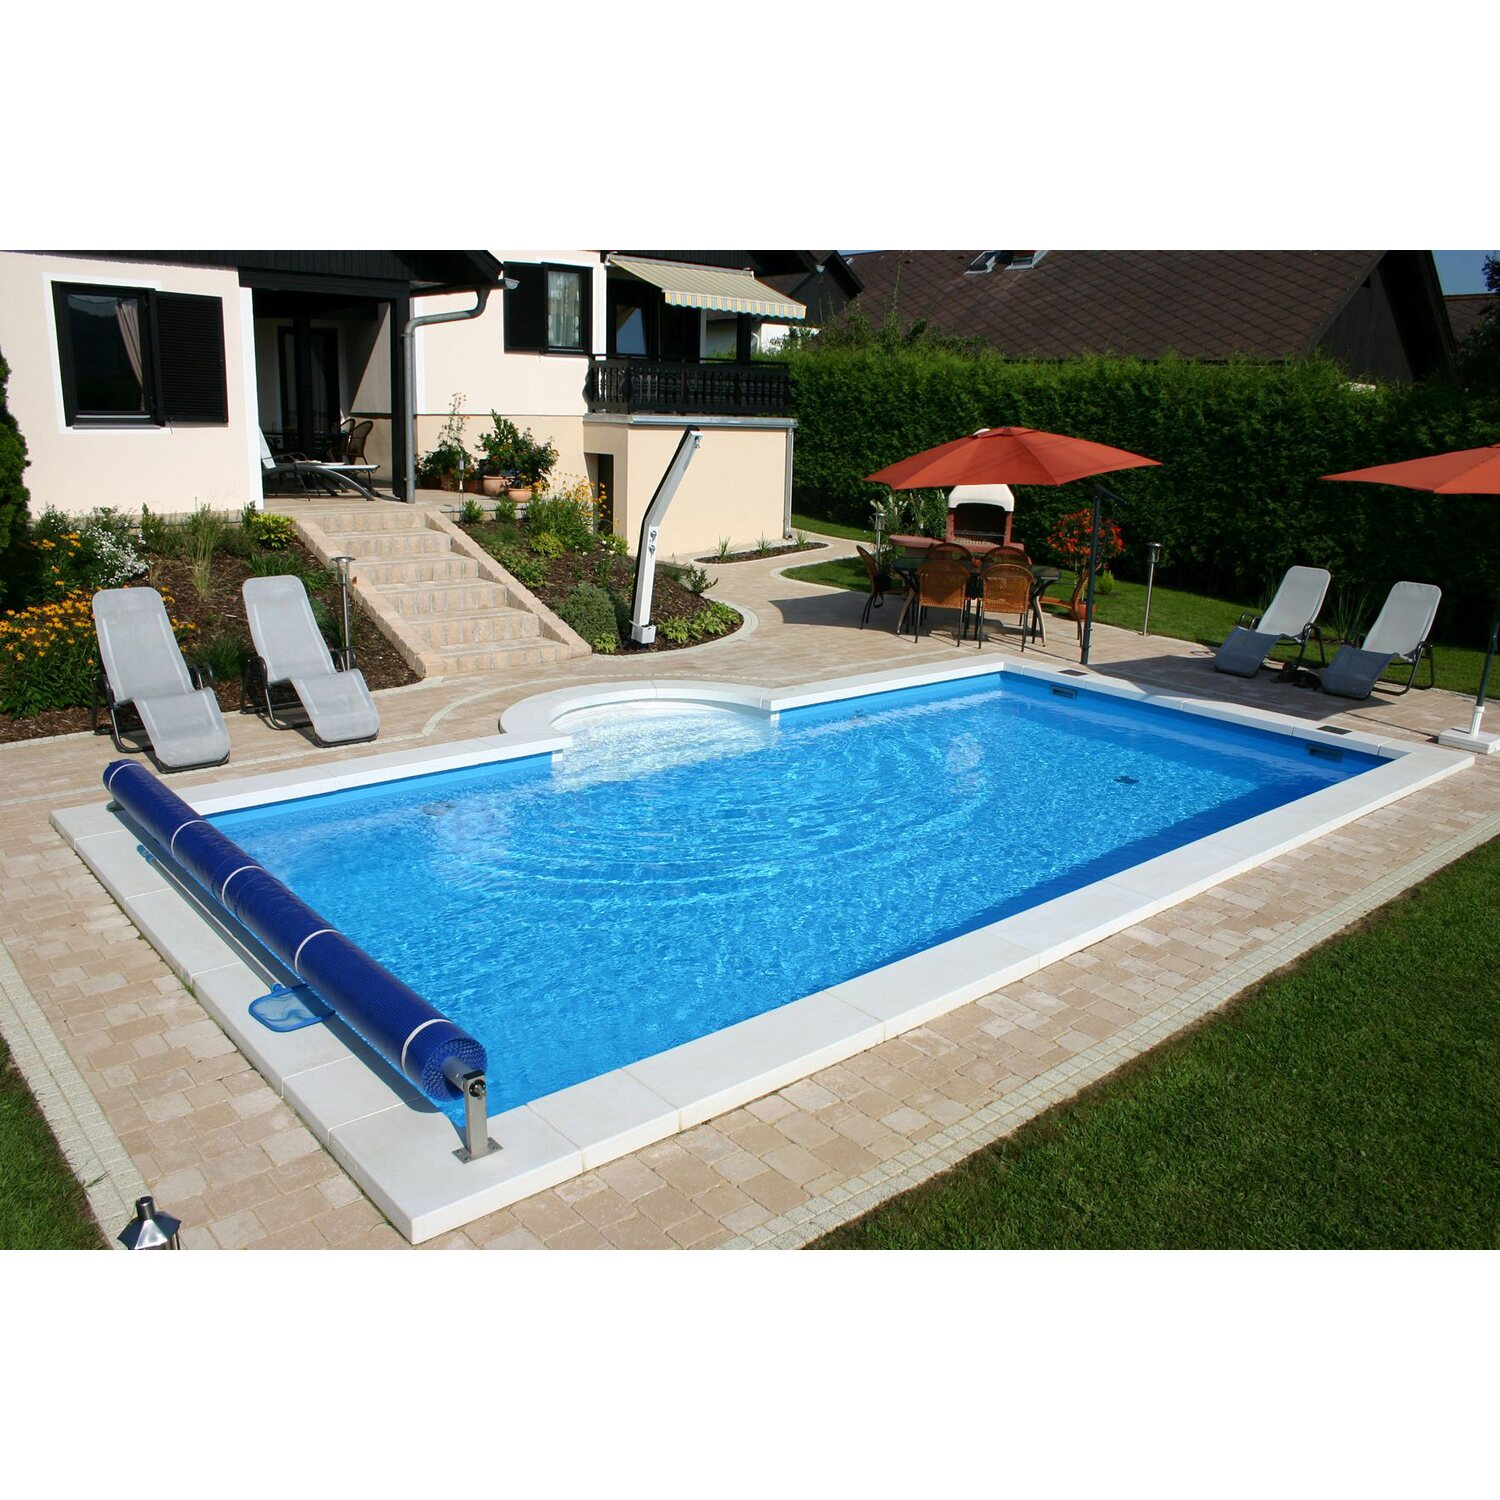 Summer fun styropor pool set london 800 cm x 400 cm x 150 cm kaufen bei obi - Swimming pool stahlwand ...